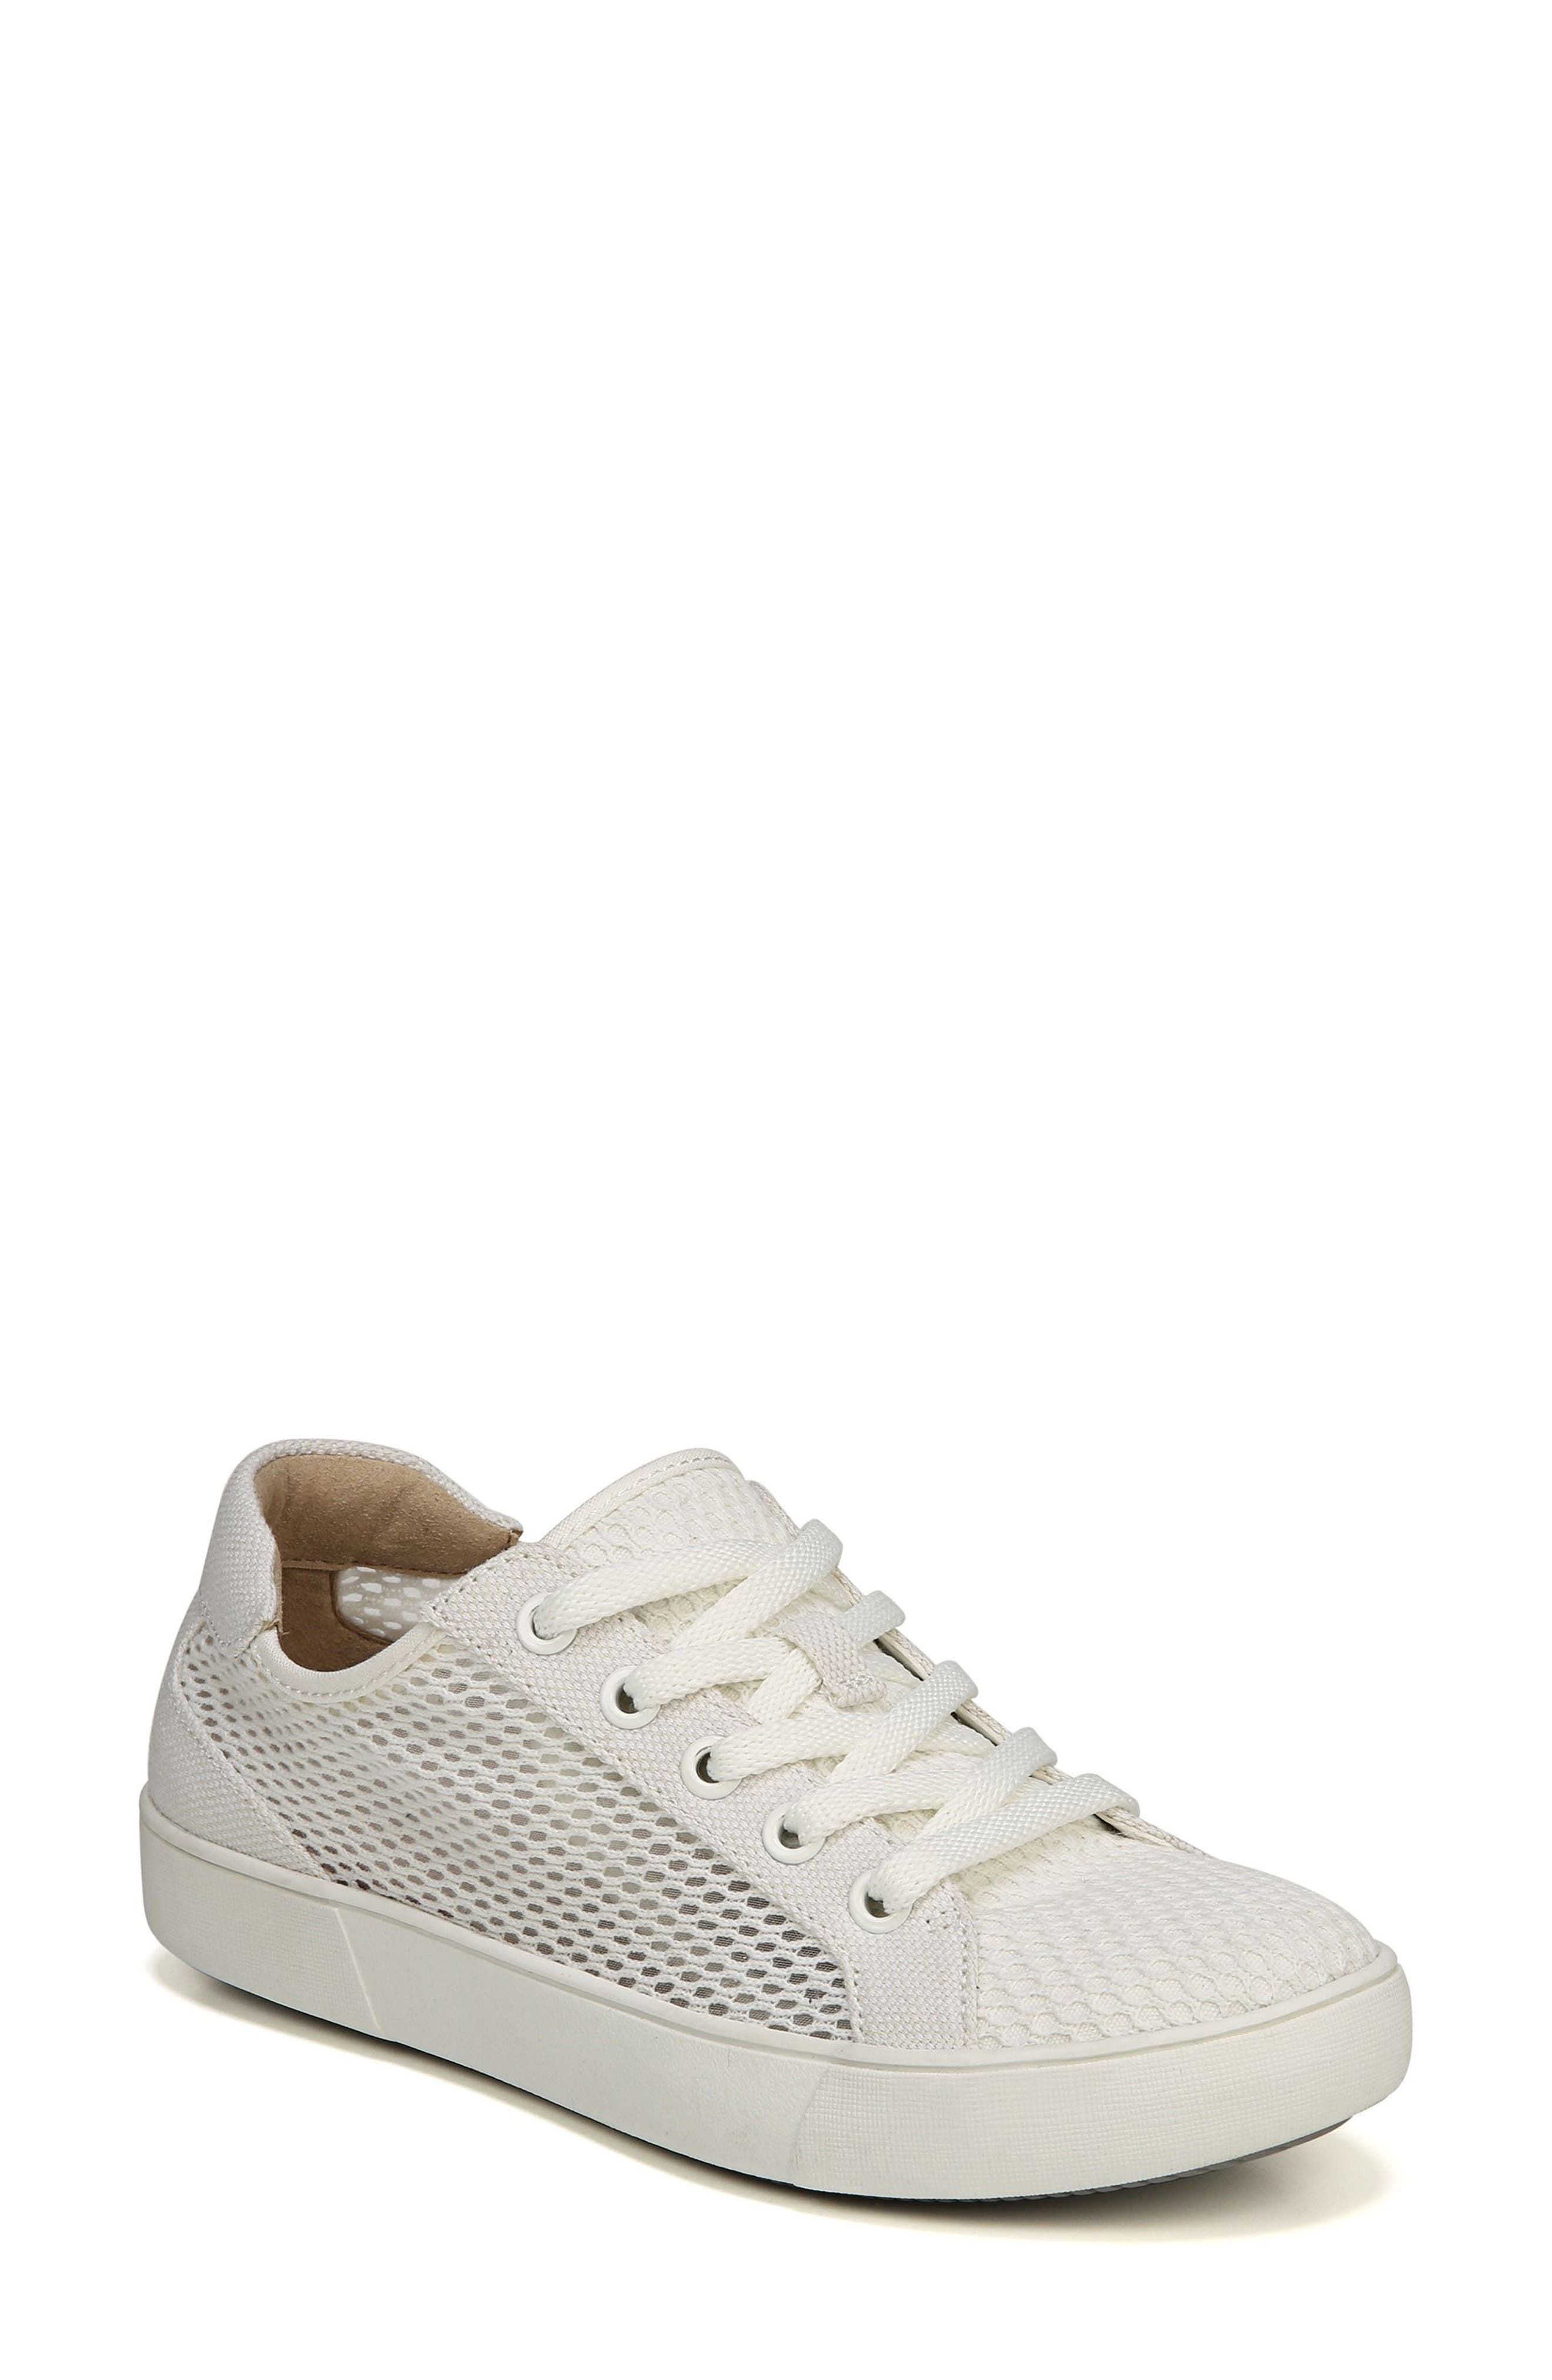 NATURALIZER, Morrison III Perforated Sneaker, Main thumbnail 1, color, WHITE FABRIC